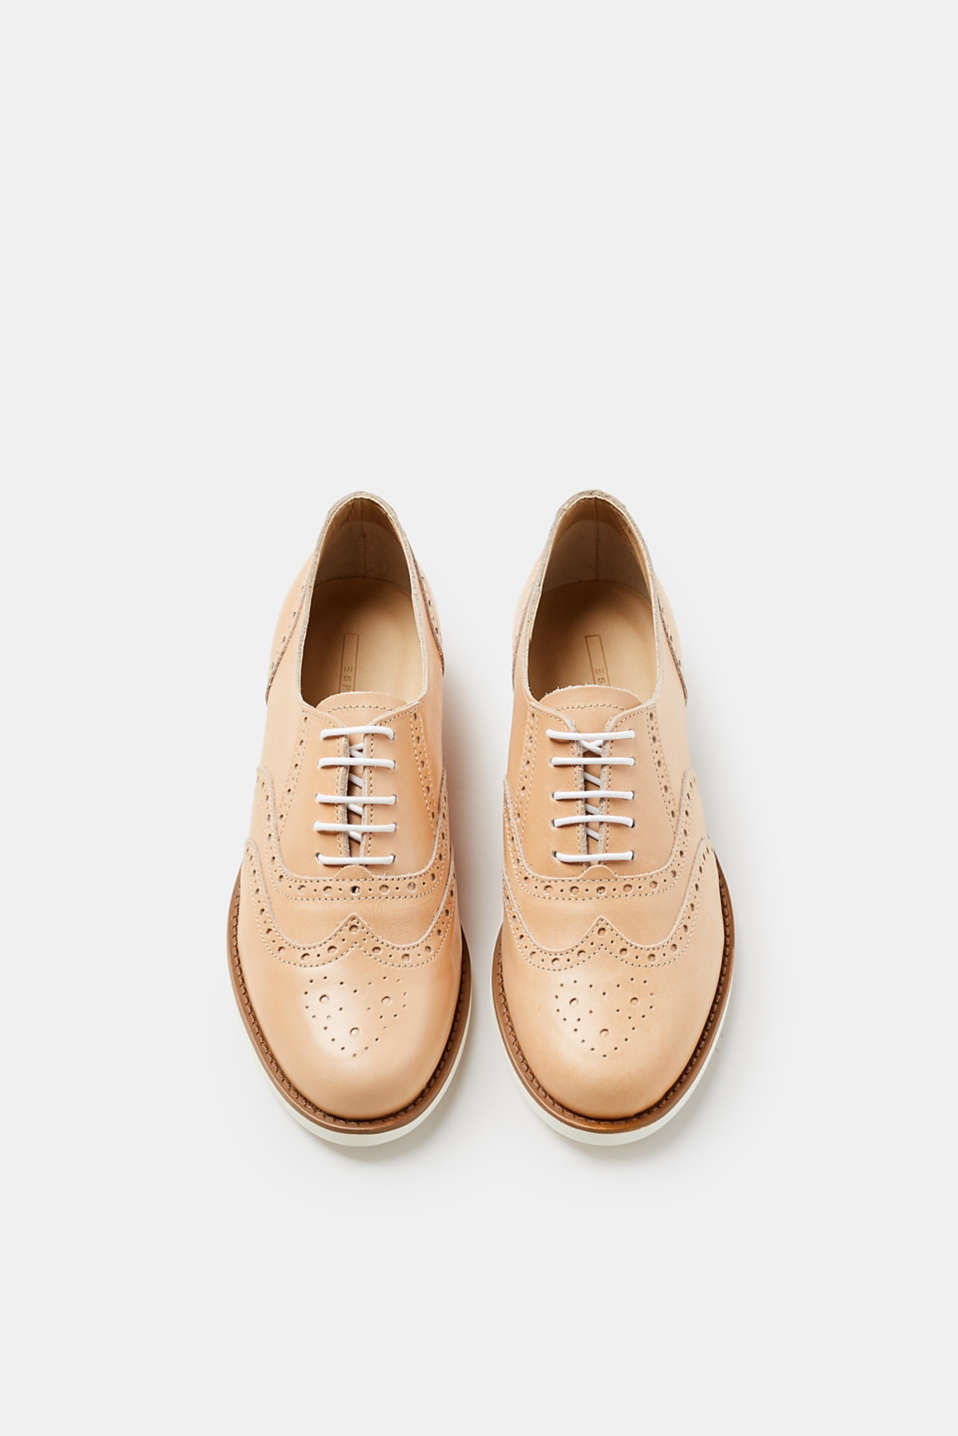 Leather lace-up shoes, white rubber sole